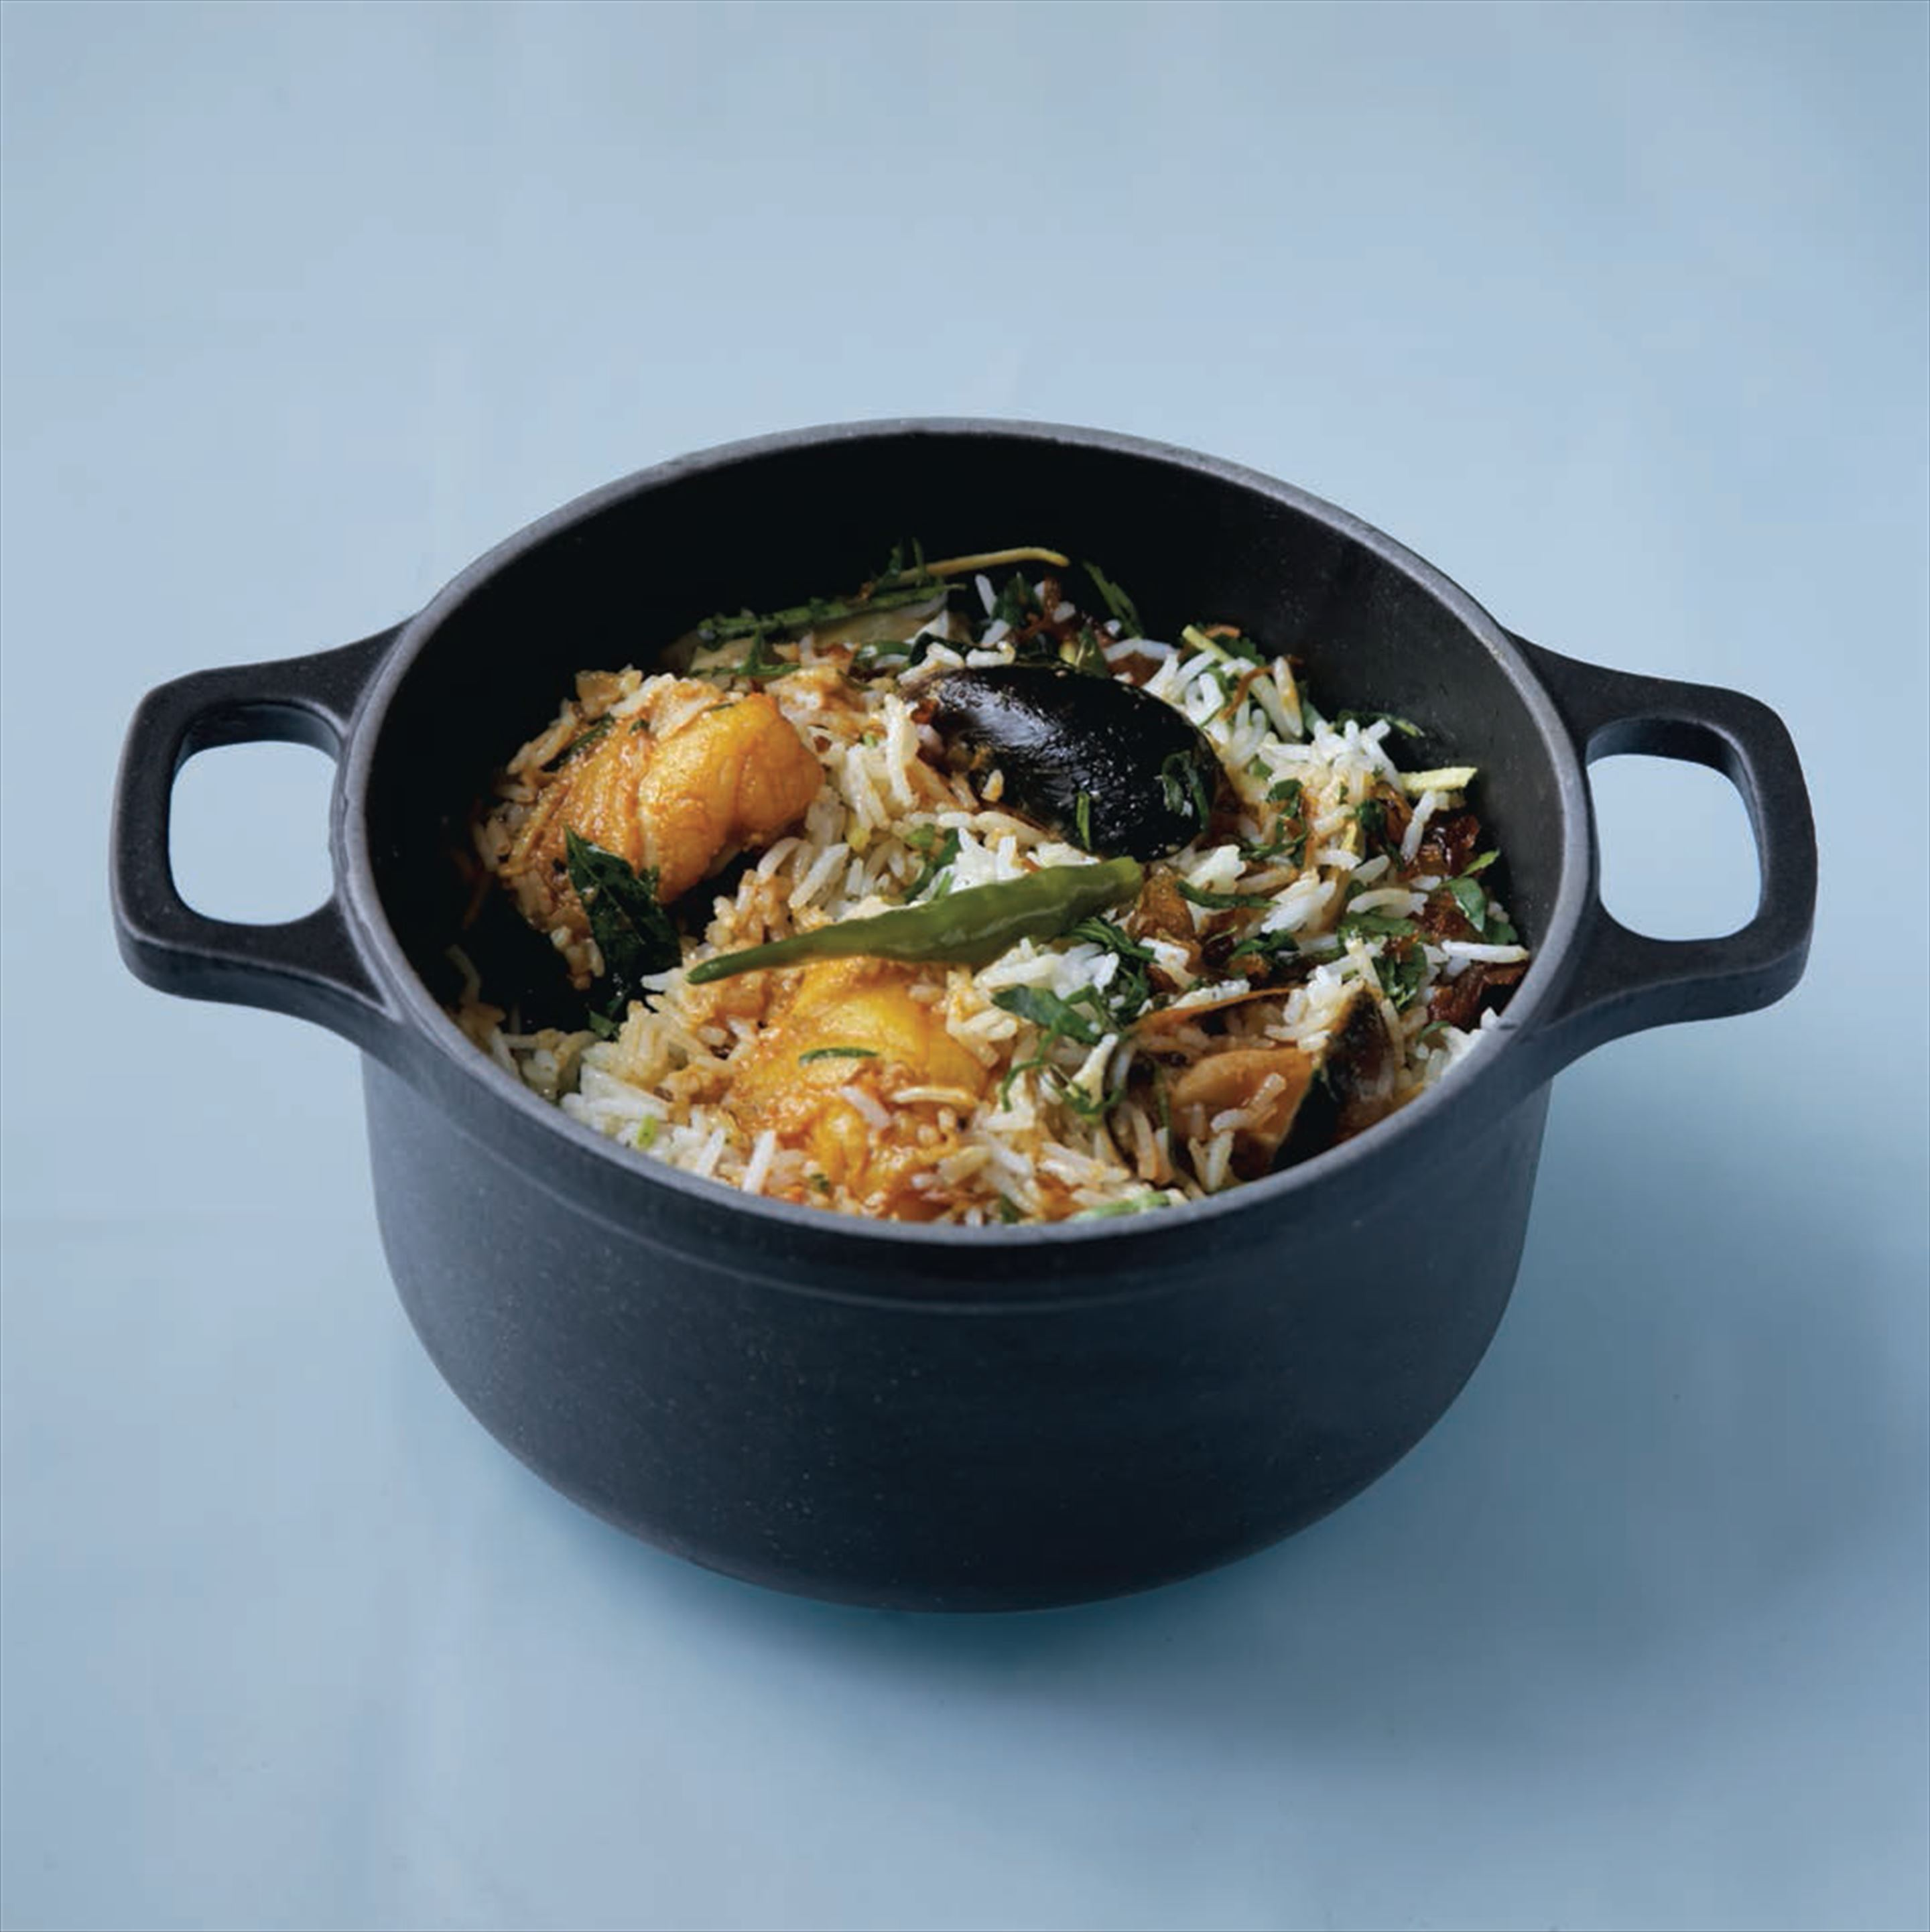 Kerala-style biryani with mussels and monkfish